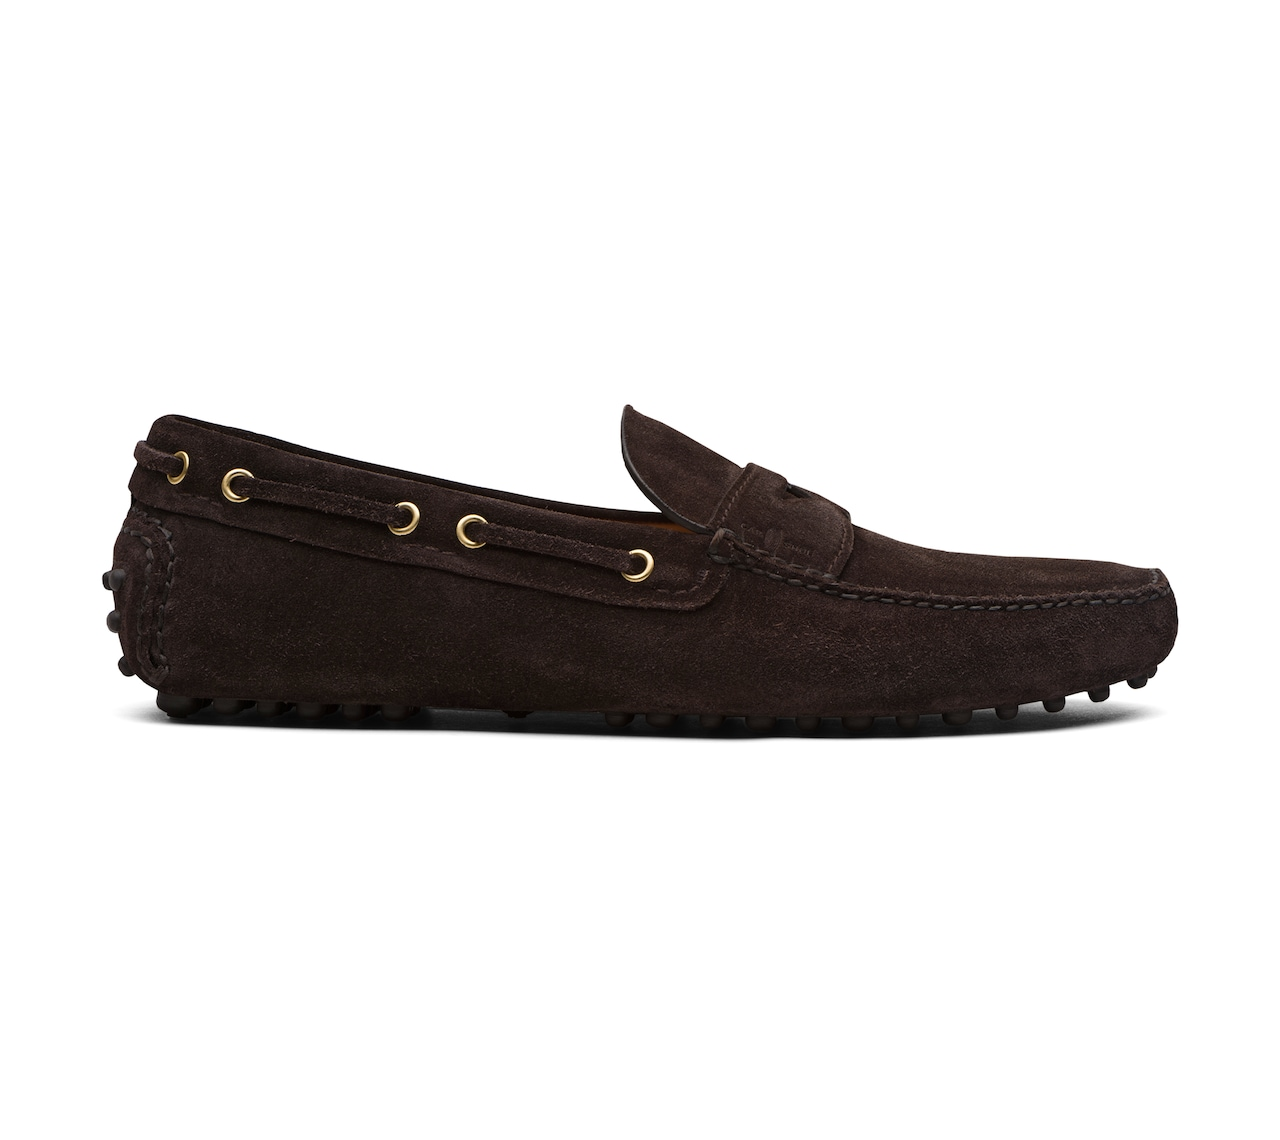 DRIVING SHOES SUEDE BROWN